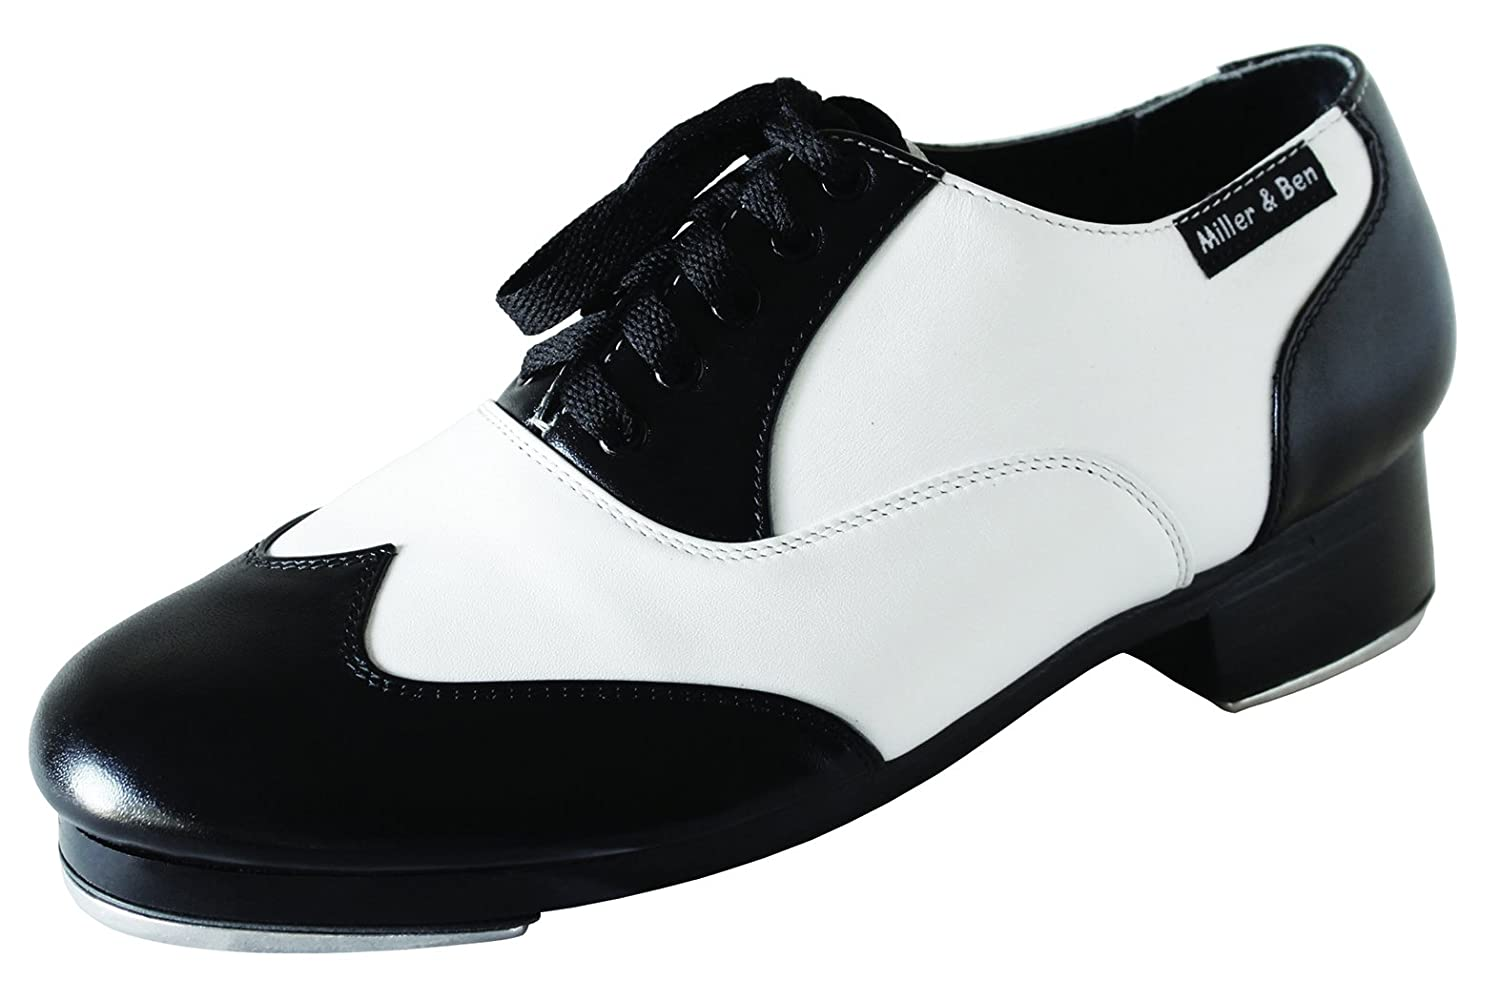 1940s Style Mens Shoes Miller & Ben Tap Shoes Jazz-Tap Master Black & White - STANDARD SIZES $285.00 AT vintagedancer.com